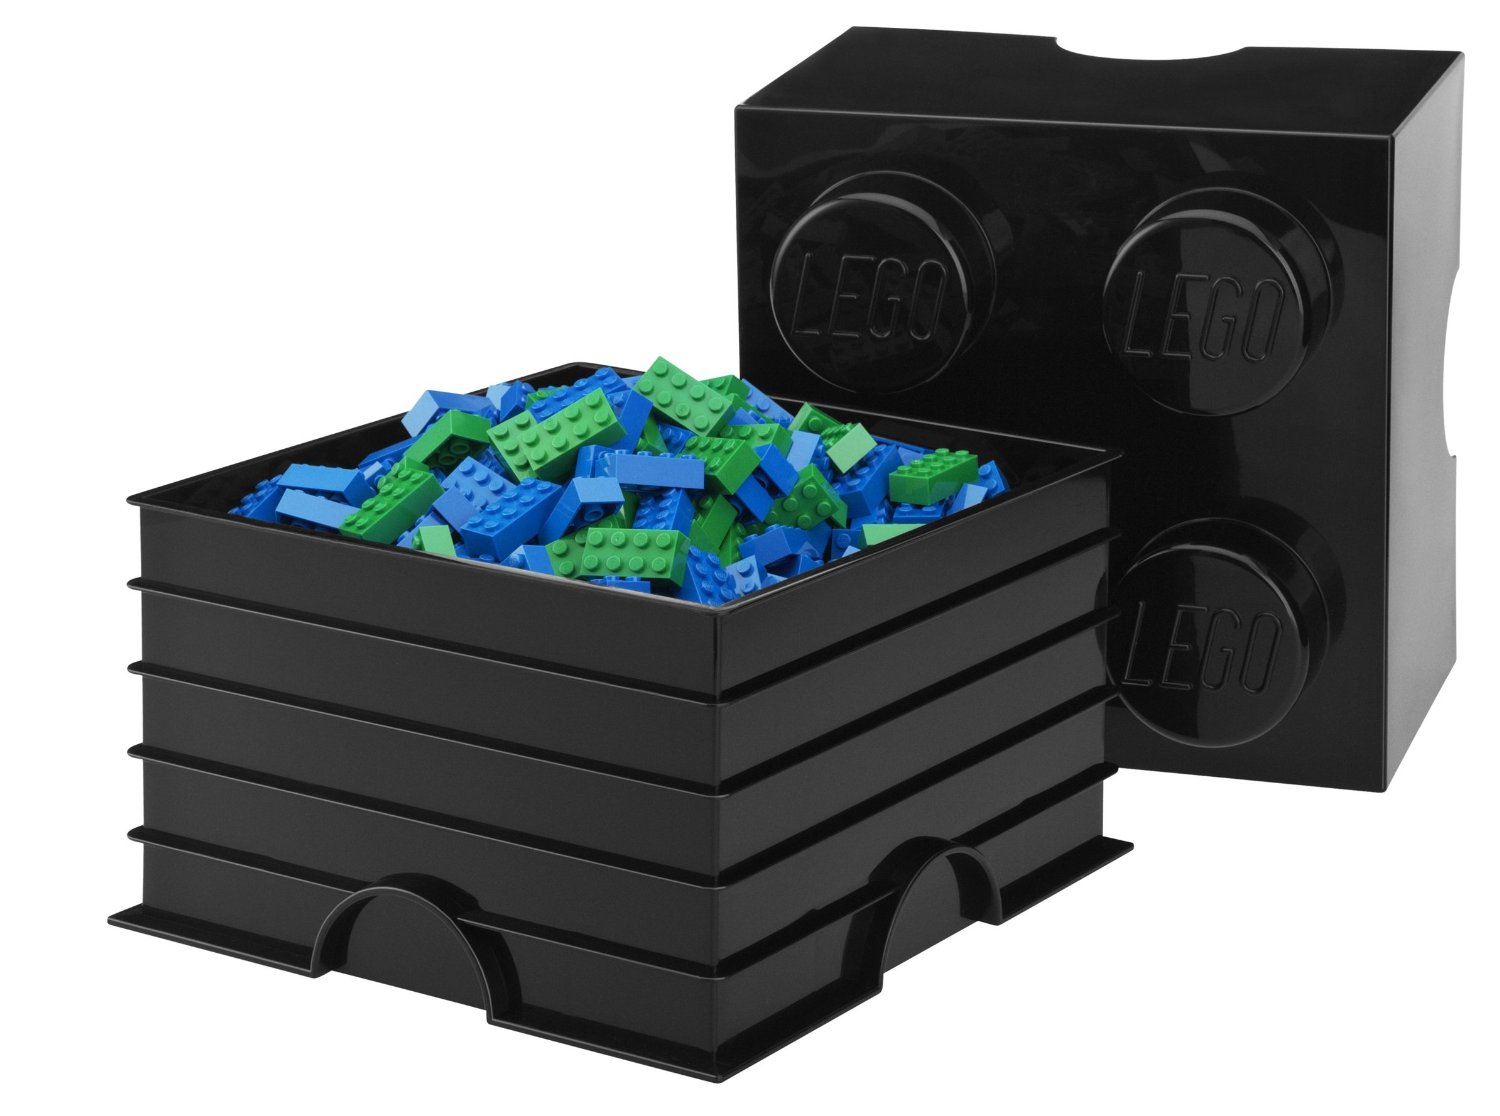 lego s  sc 1 st  Saving with Vetta & LEGO Storage Brick 8 Yellow Only $22.99 Down From $38.99 SHIPPED ...